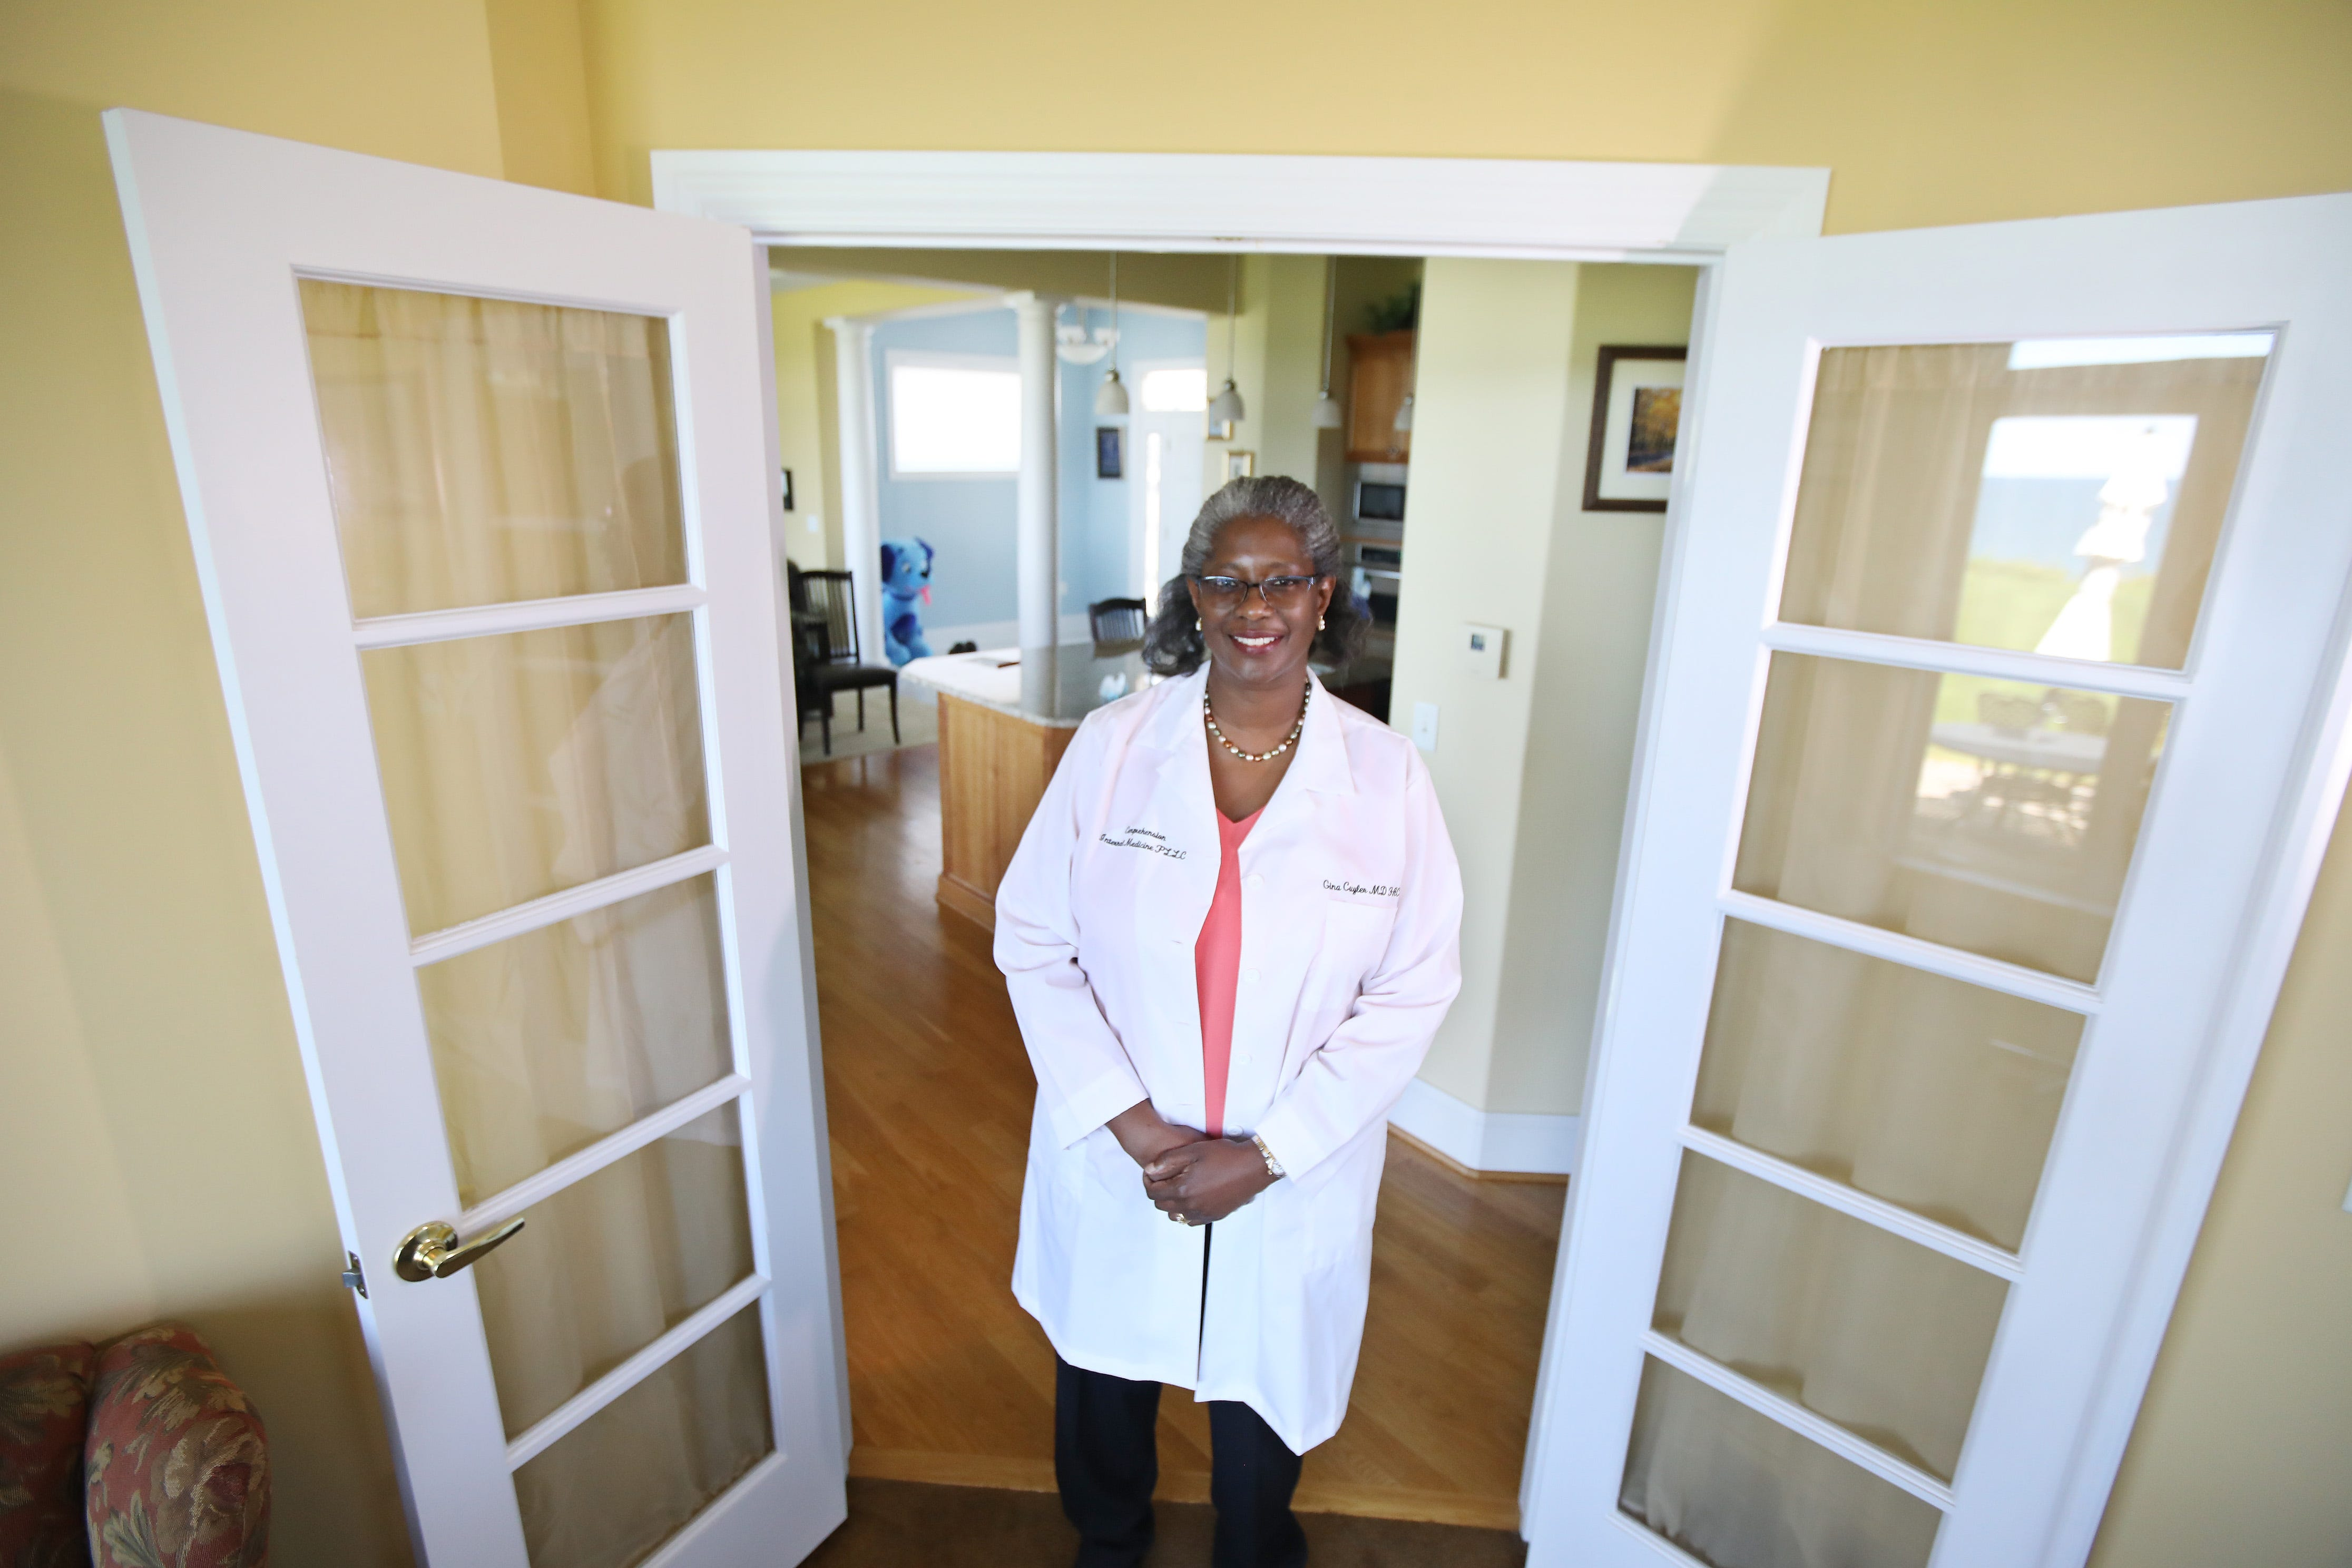 Dr. Gina Cuyler works in her home office in Rochester, N.Y. Dr. Cuyler co-founded the Black Physicians Network of Greater Rochester as a way to help mentor and support medical students who are from underrepresented communities of color.